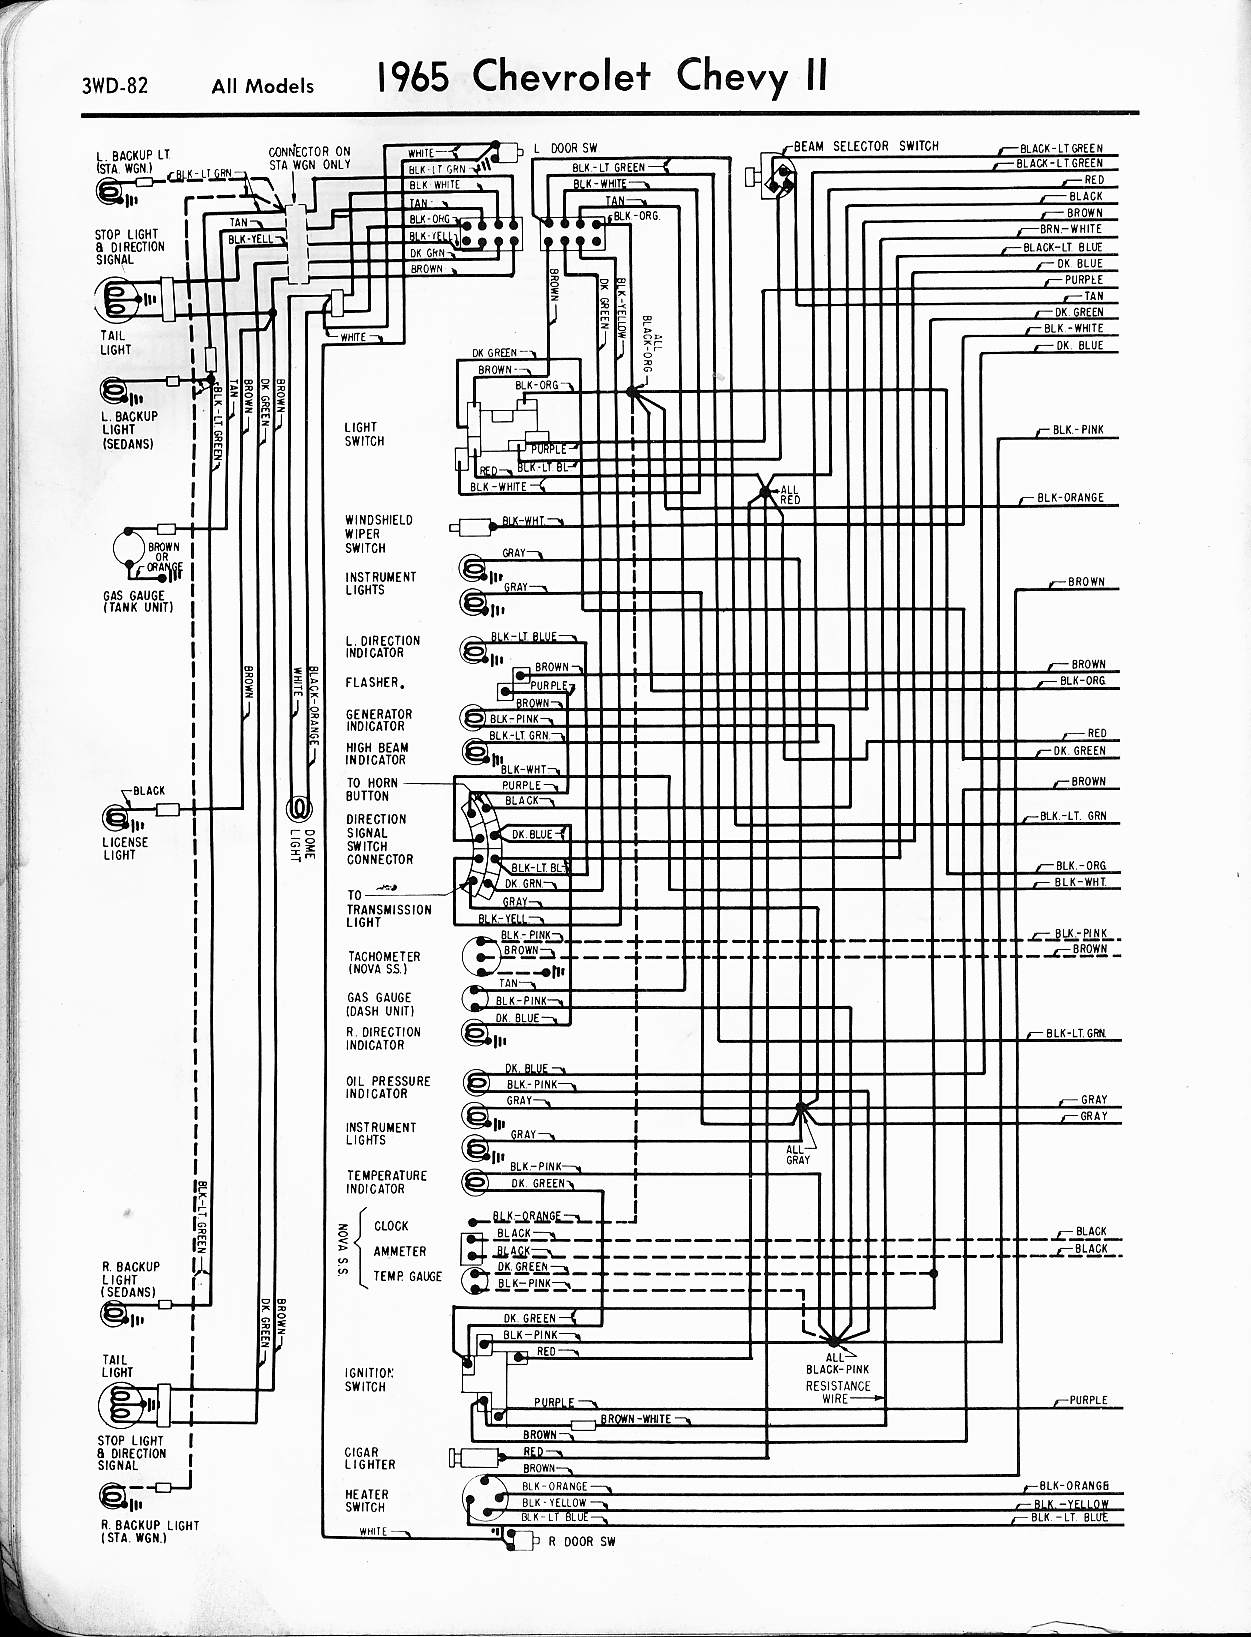 MWireChev65_3WD 082 chevrolet wiring schematics chevrolet wiring diagrams instruction chevy wiring schematics at honlapkeszites.co